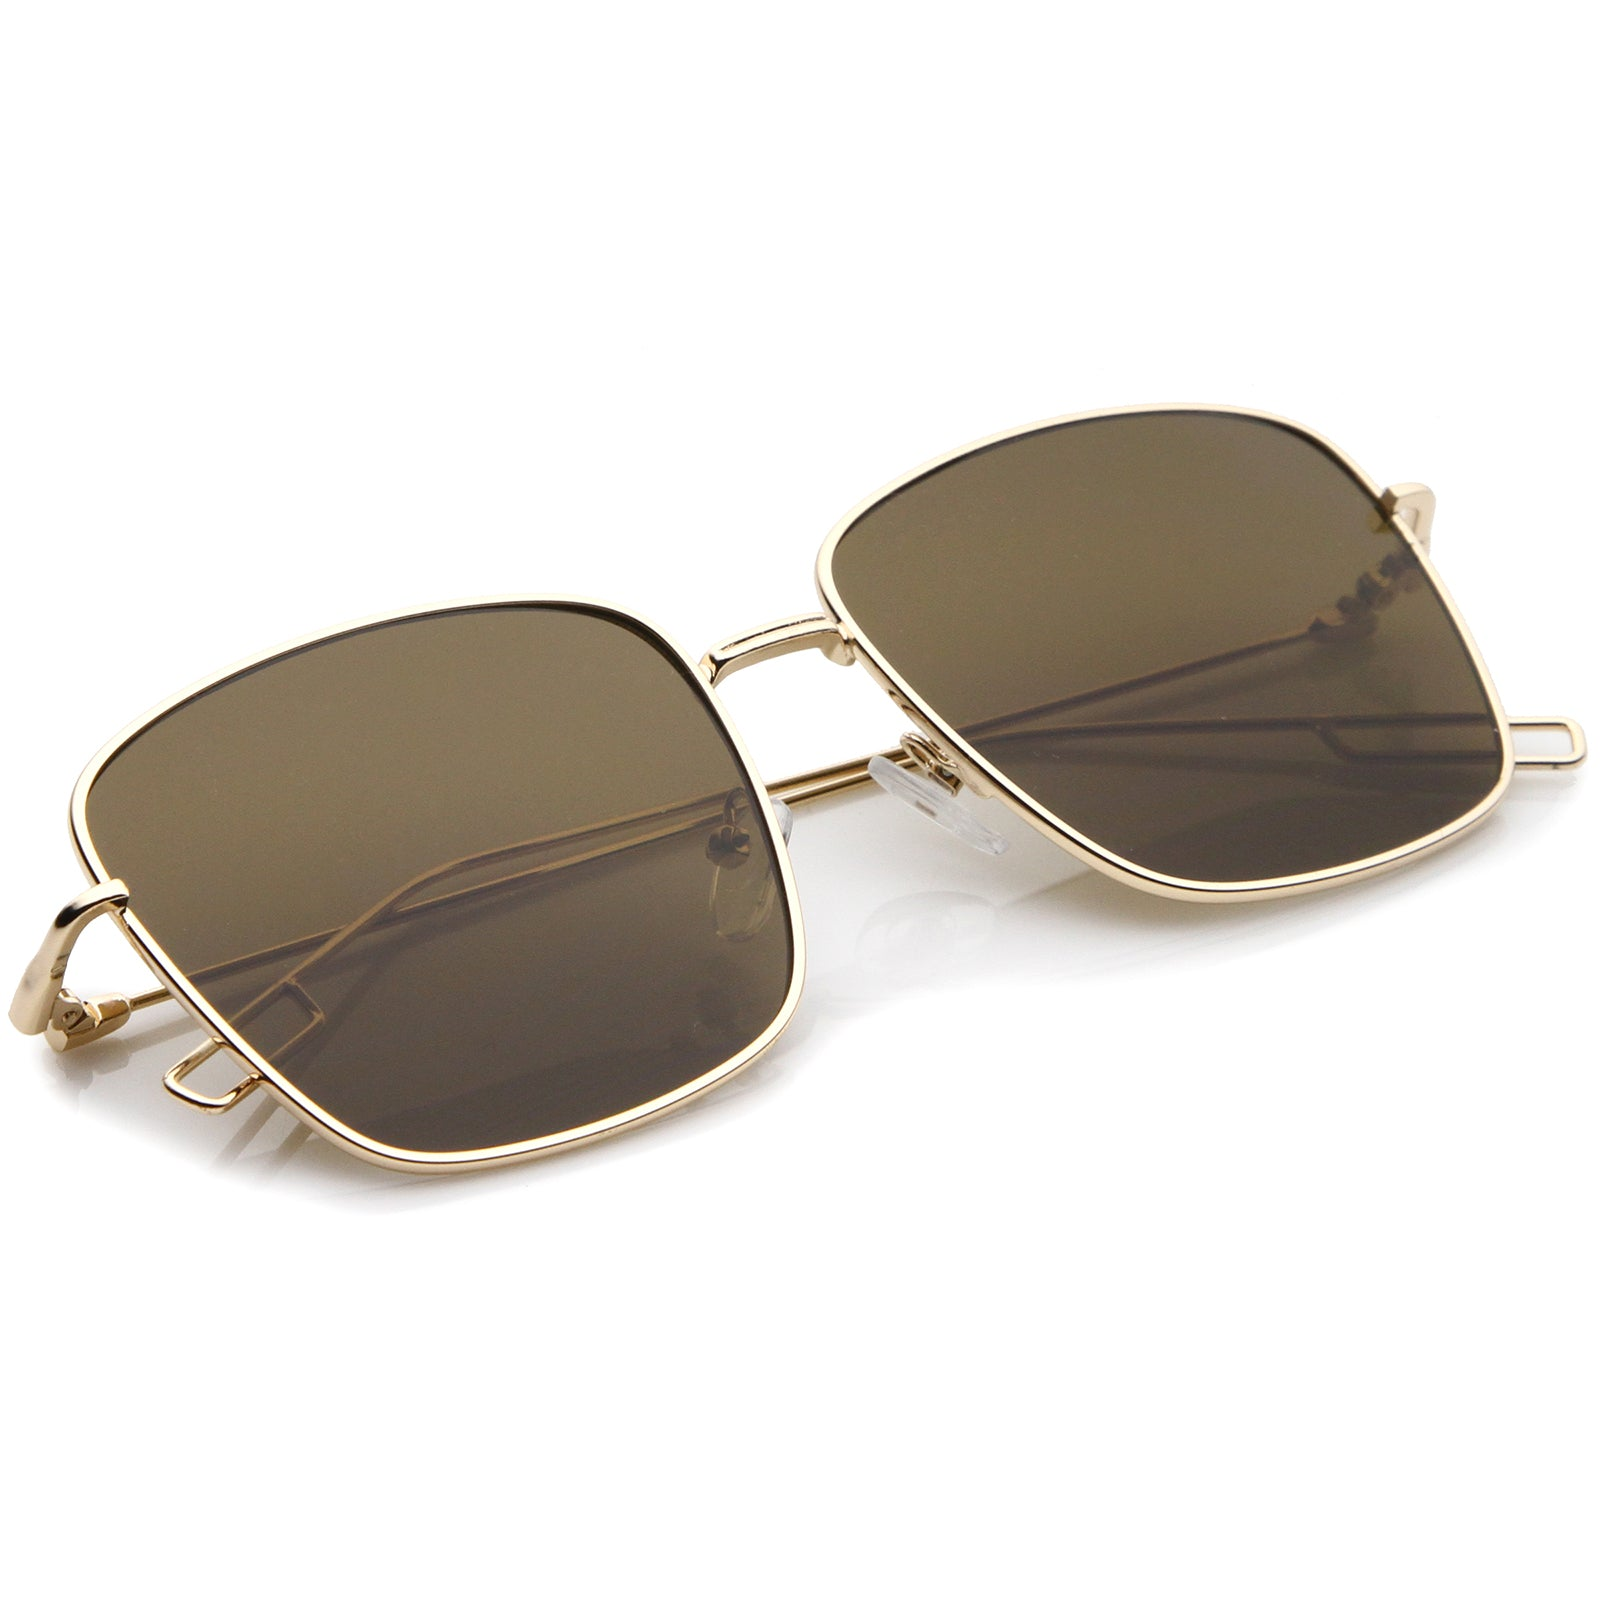 Minimal Wire Metal Frame Hook Temple Flat Lens Square Sunglasses 58mm - sunglass.la - 4